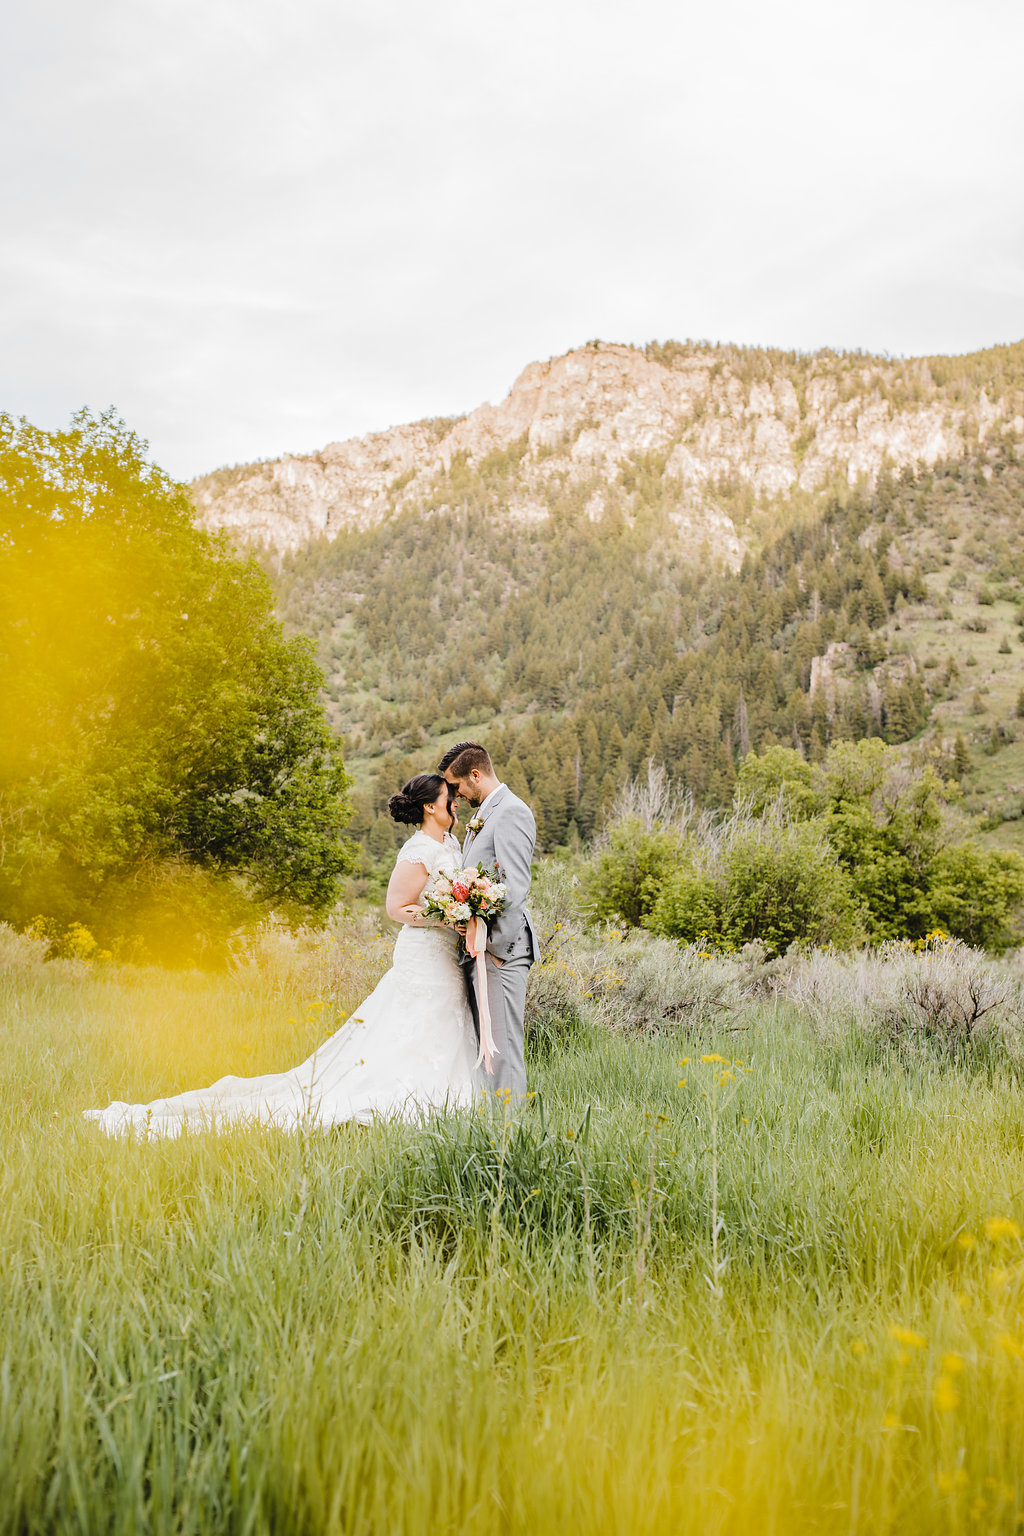 sunset wedding photography bride and groom formals